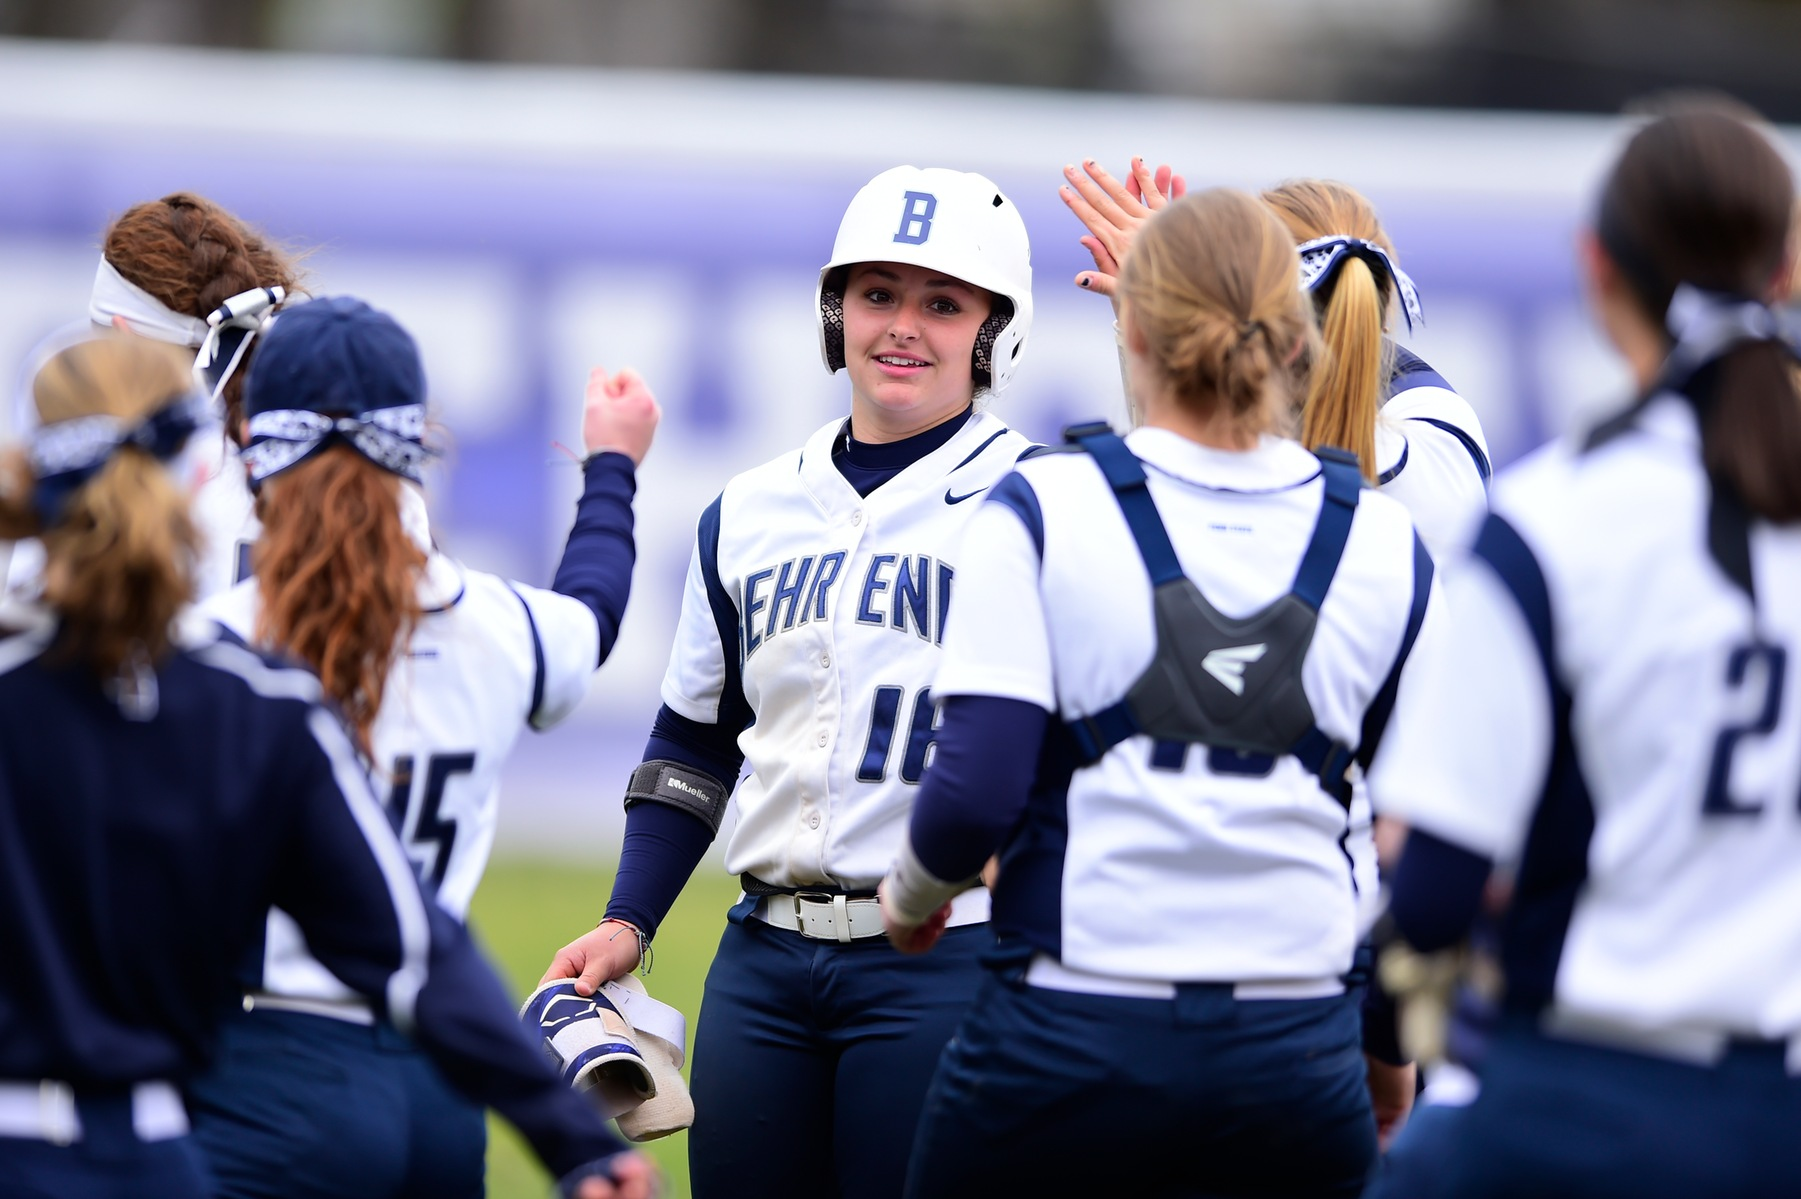 Lions Stay Alive in AMCC Tournament with Extra Inning Win Over D'Youville